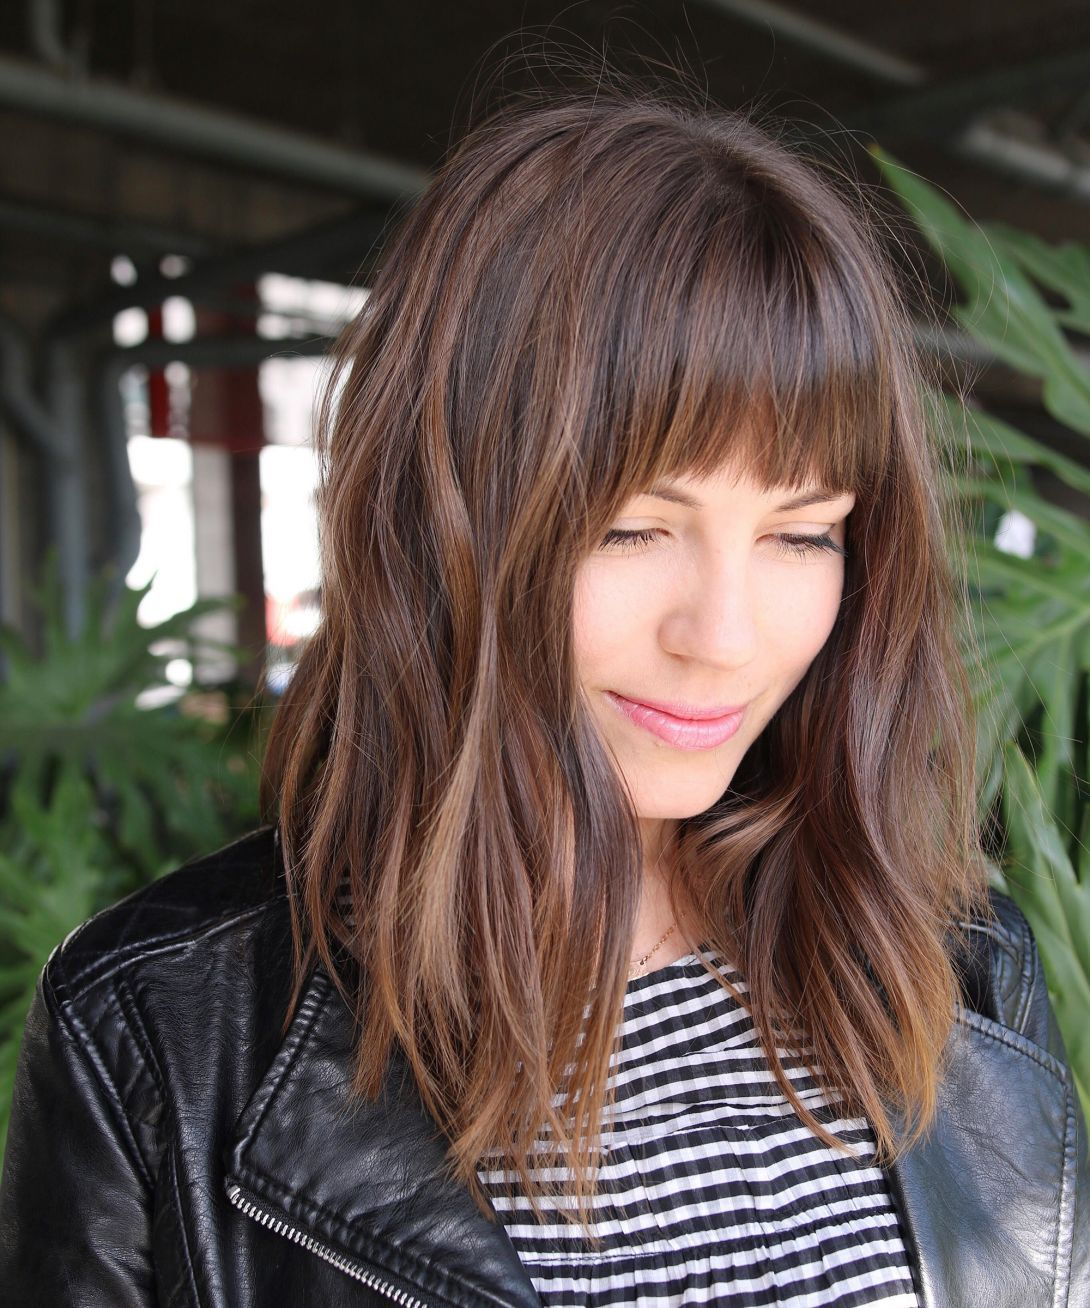 Cool Bangs For Long Hair: The 2018 Hair Trends We're Taking Straight Into The New